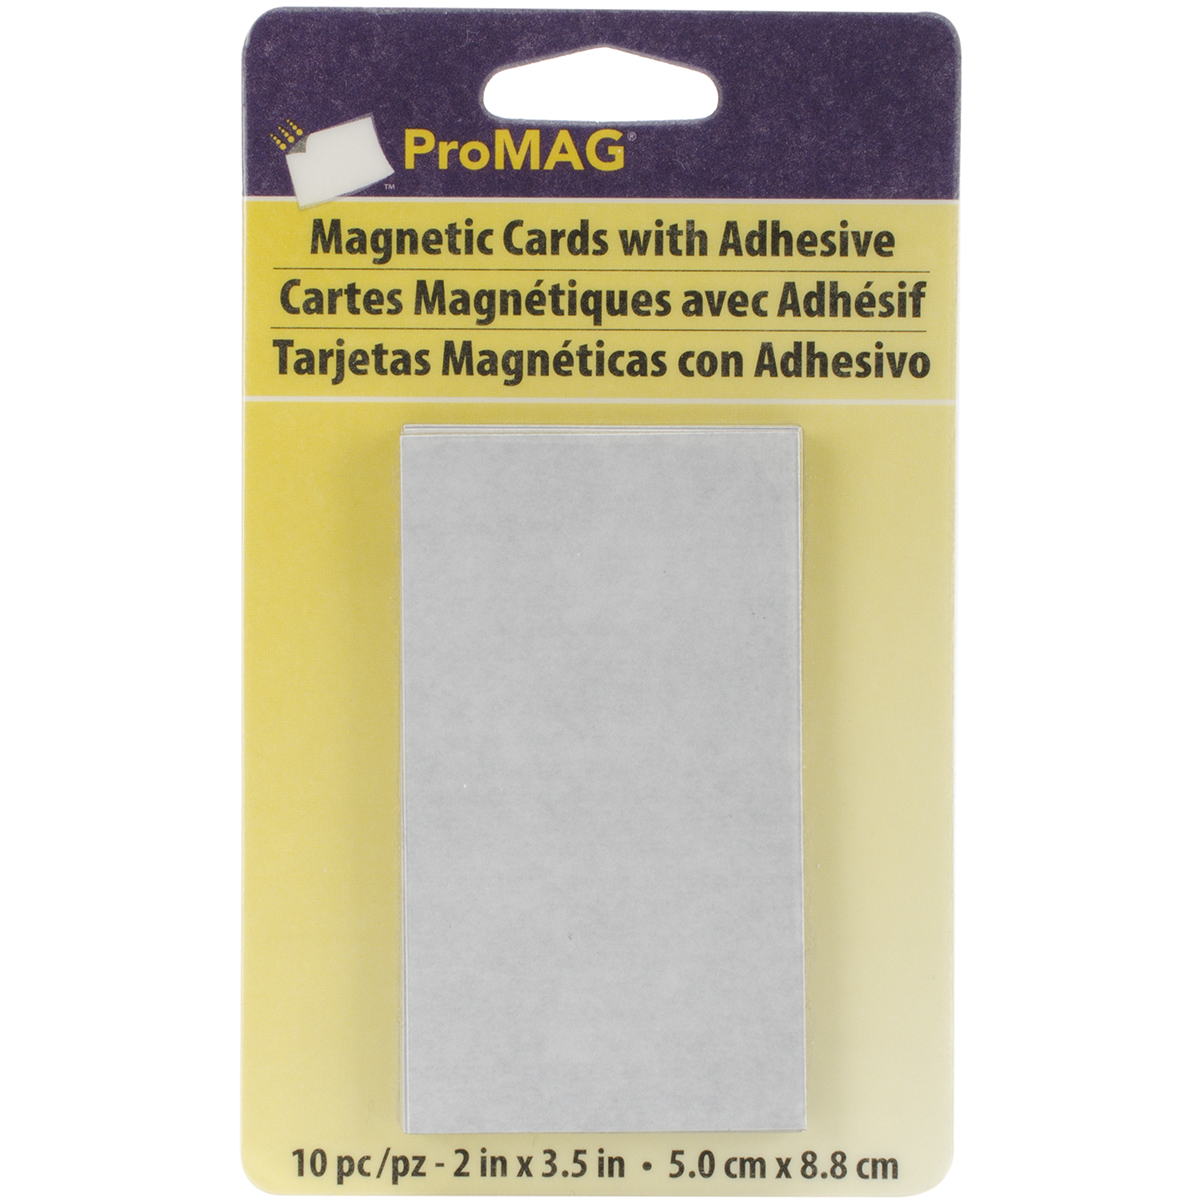 Adhesive Business Card Magnets, 10-Pack - Walmart.com